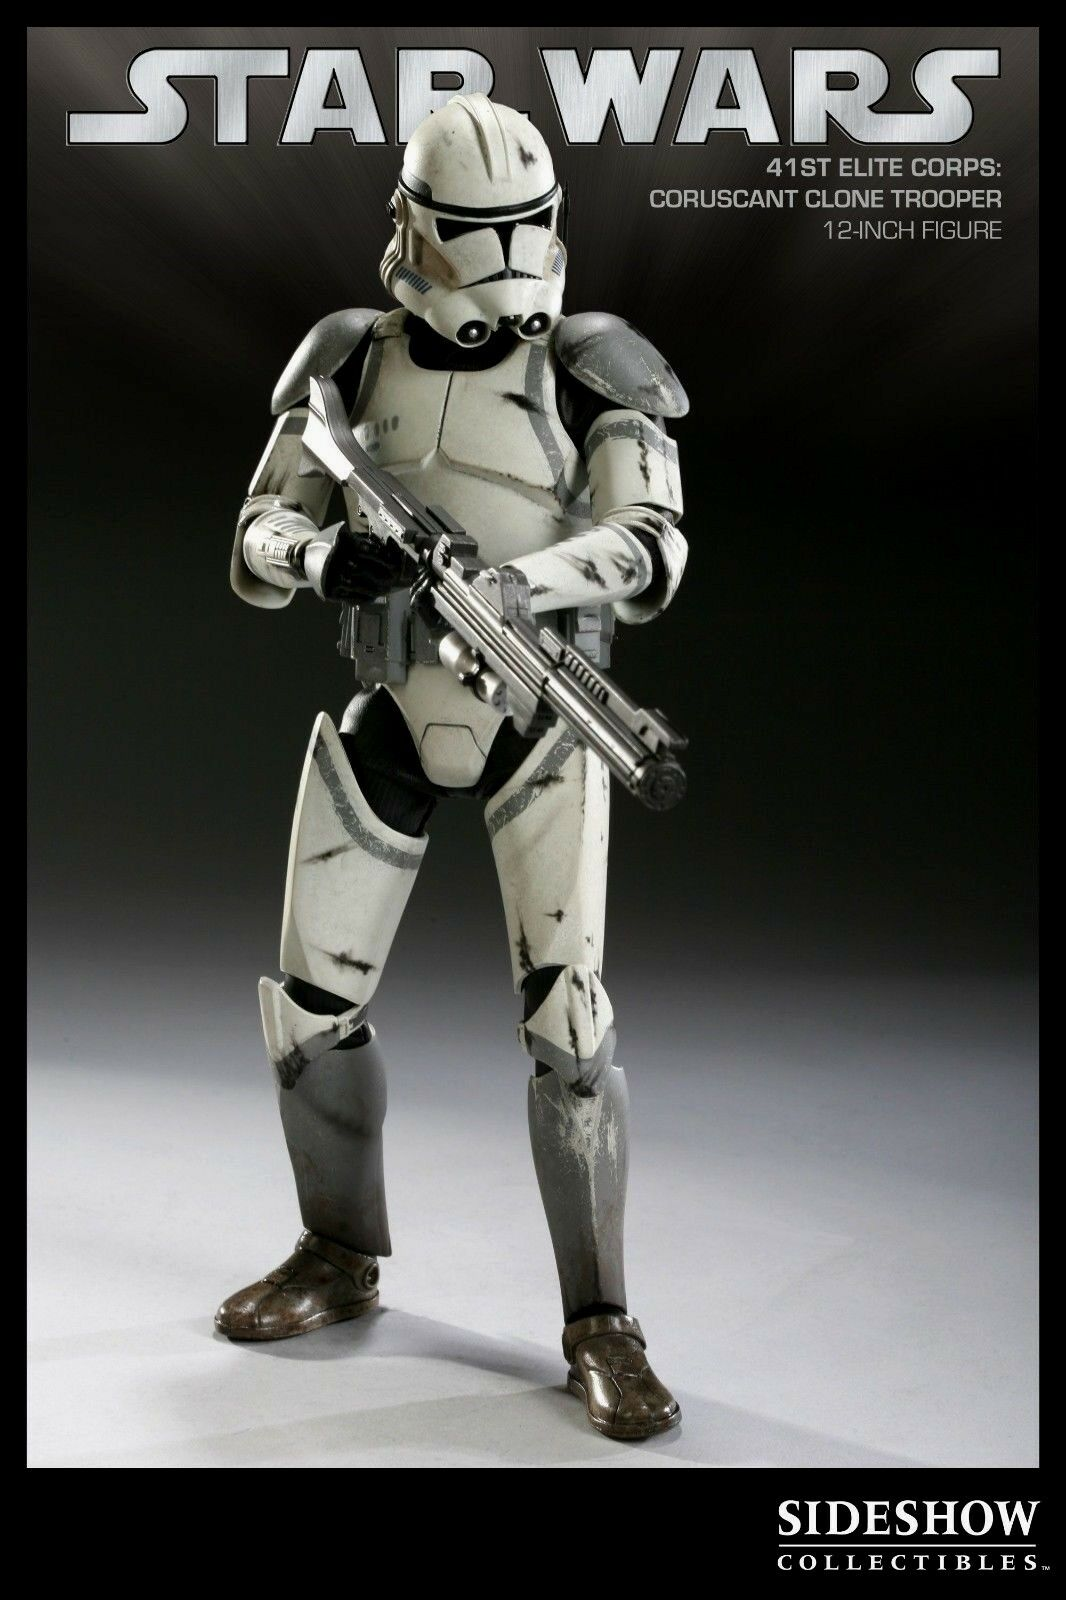 Sideshow 1 6 41st Coruscant Militaries of Star Wars Clone Trooper Figure